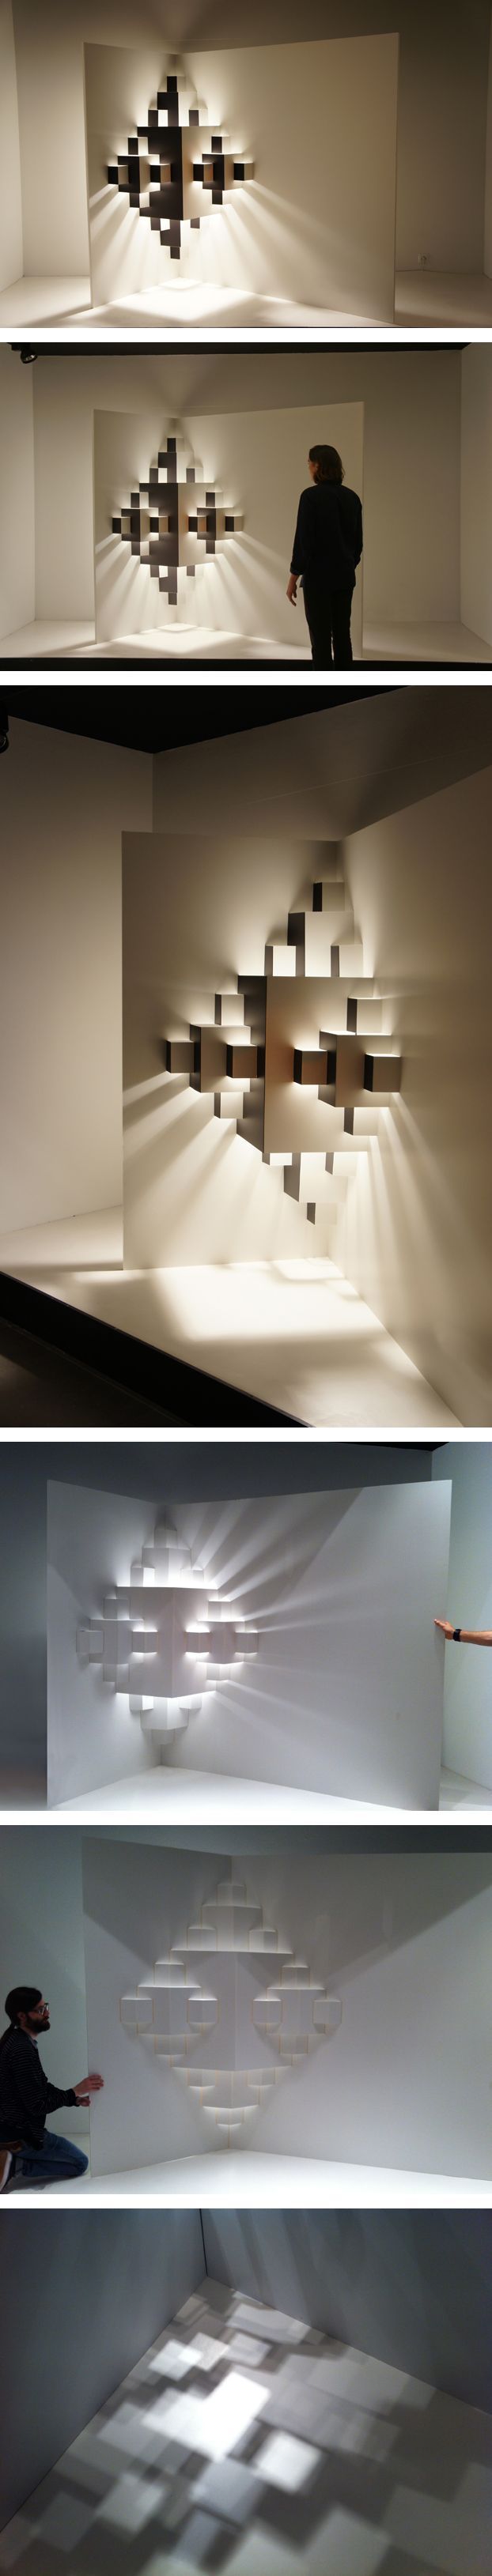 Design Lighting Ideas : Well Well Designers. Pixel. Window display. light installation paper Dimensi